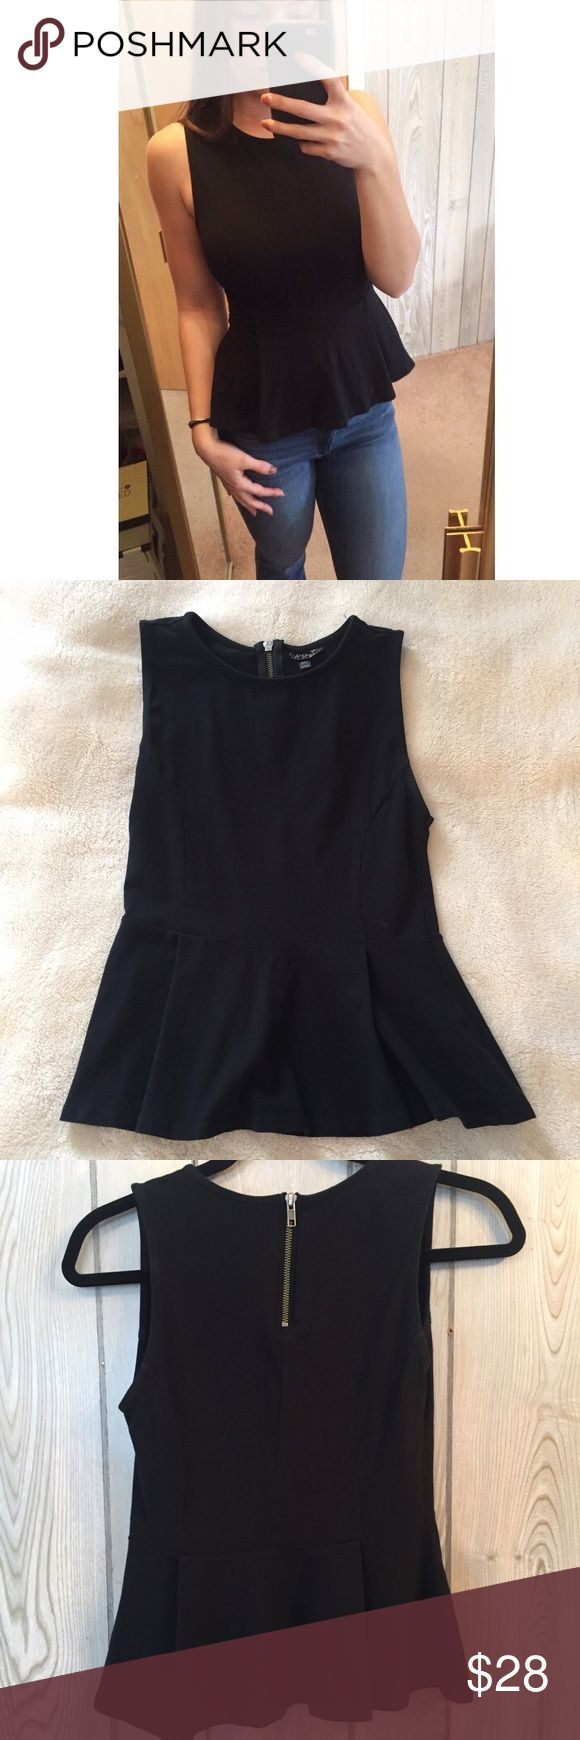 Topshop Black Peplum Top Only worn twice. All black, form fitting through the top. Half zipper to take on and off down the back. Size 6. Topshop Tops Tank Tops